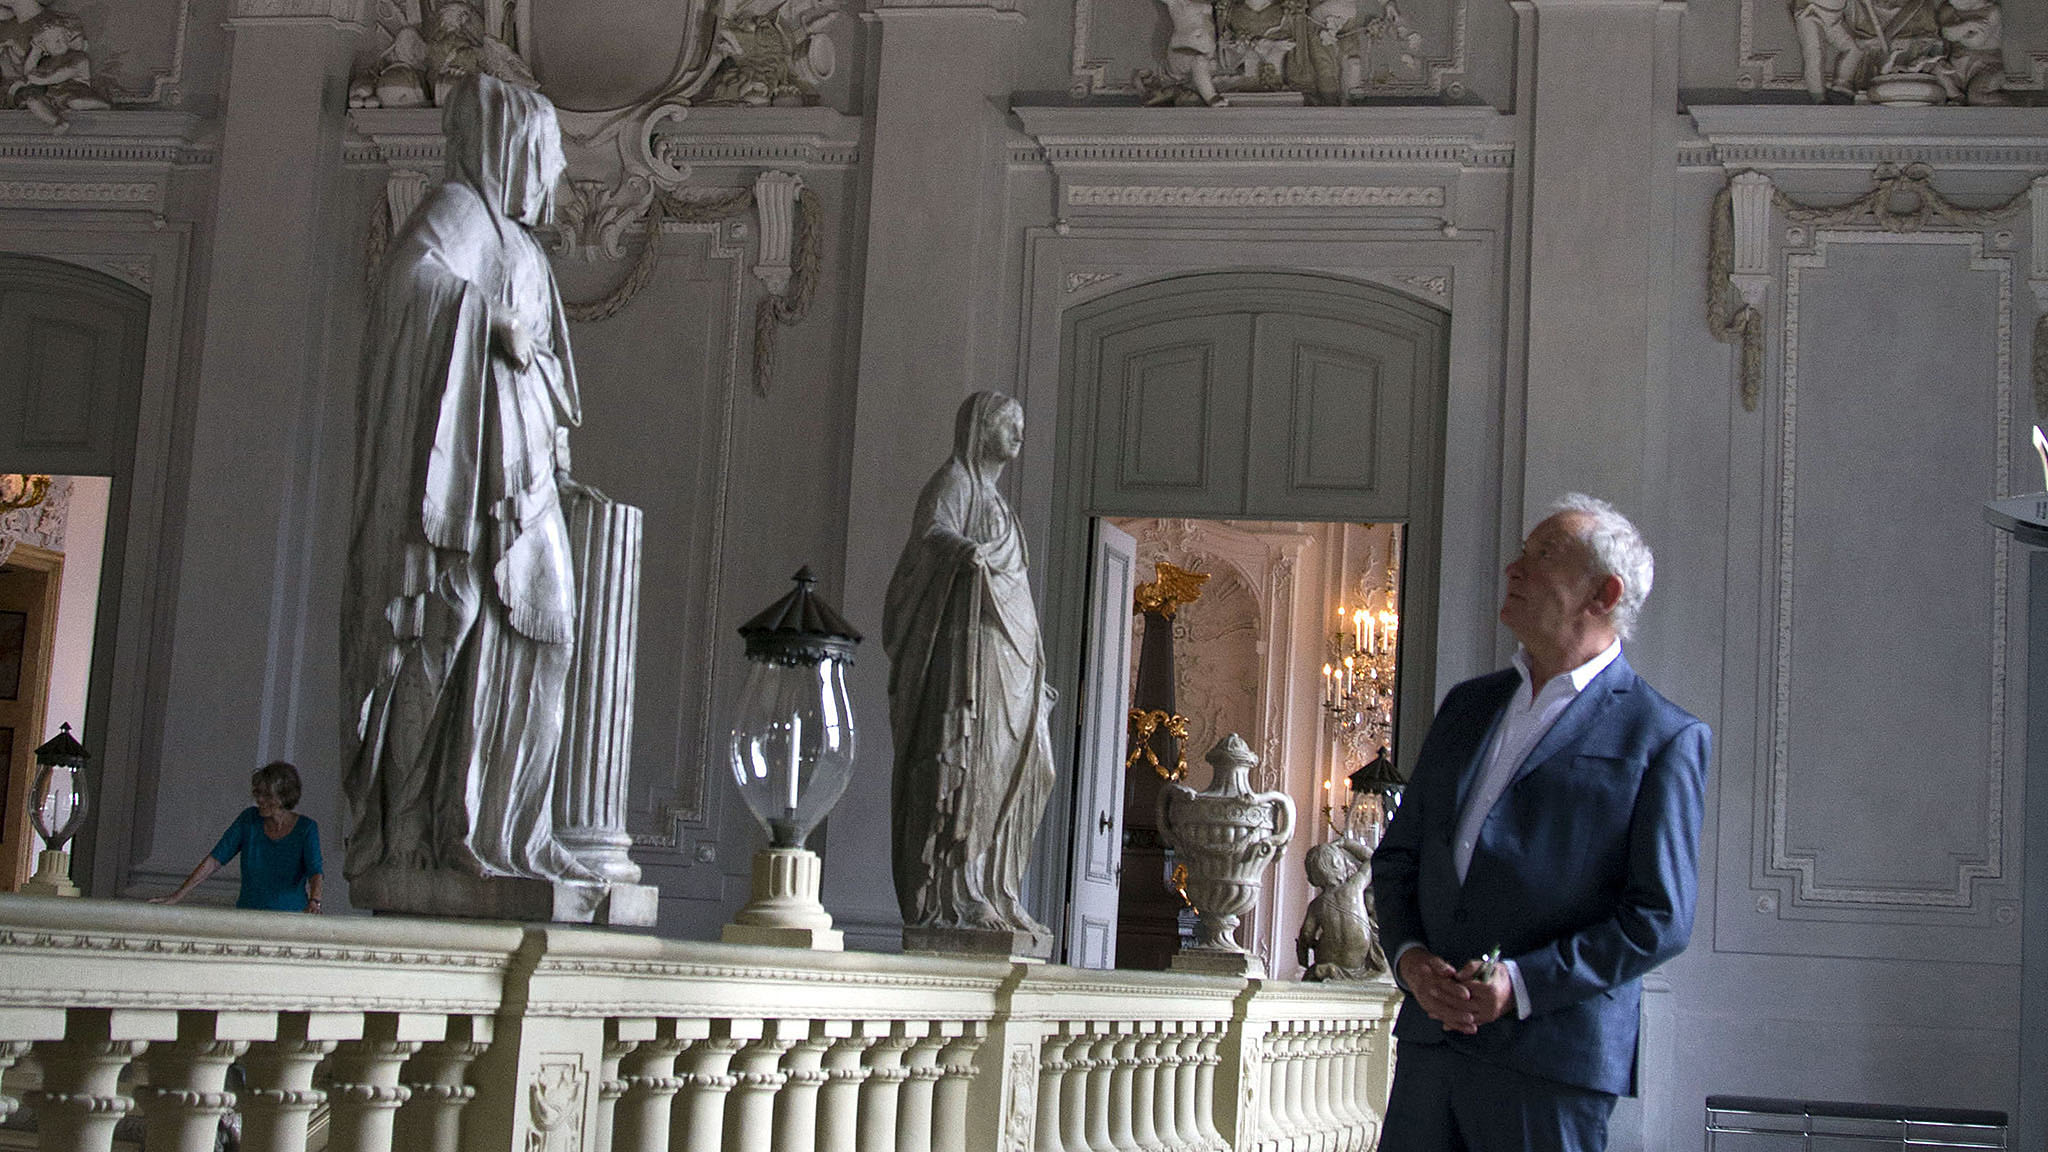 From darkness: Simon Schama on human adversity and the origins of great art